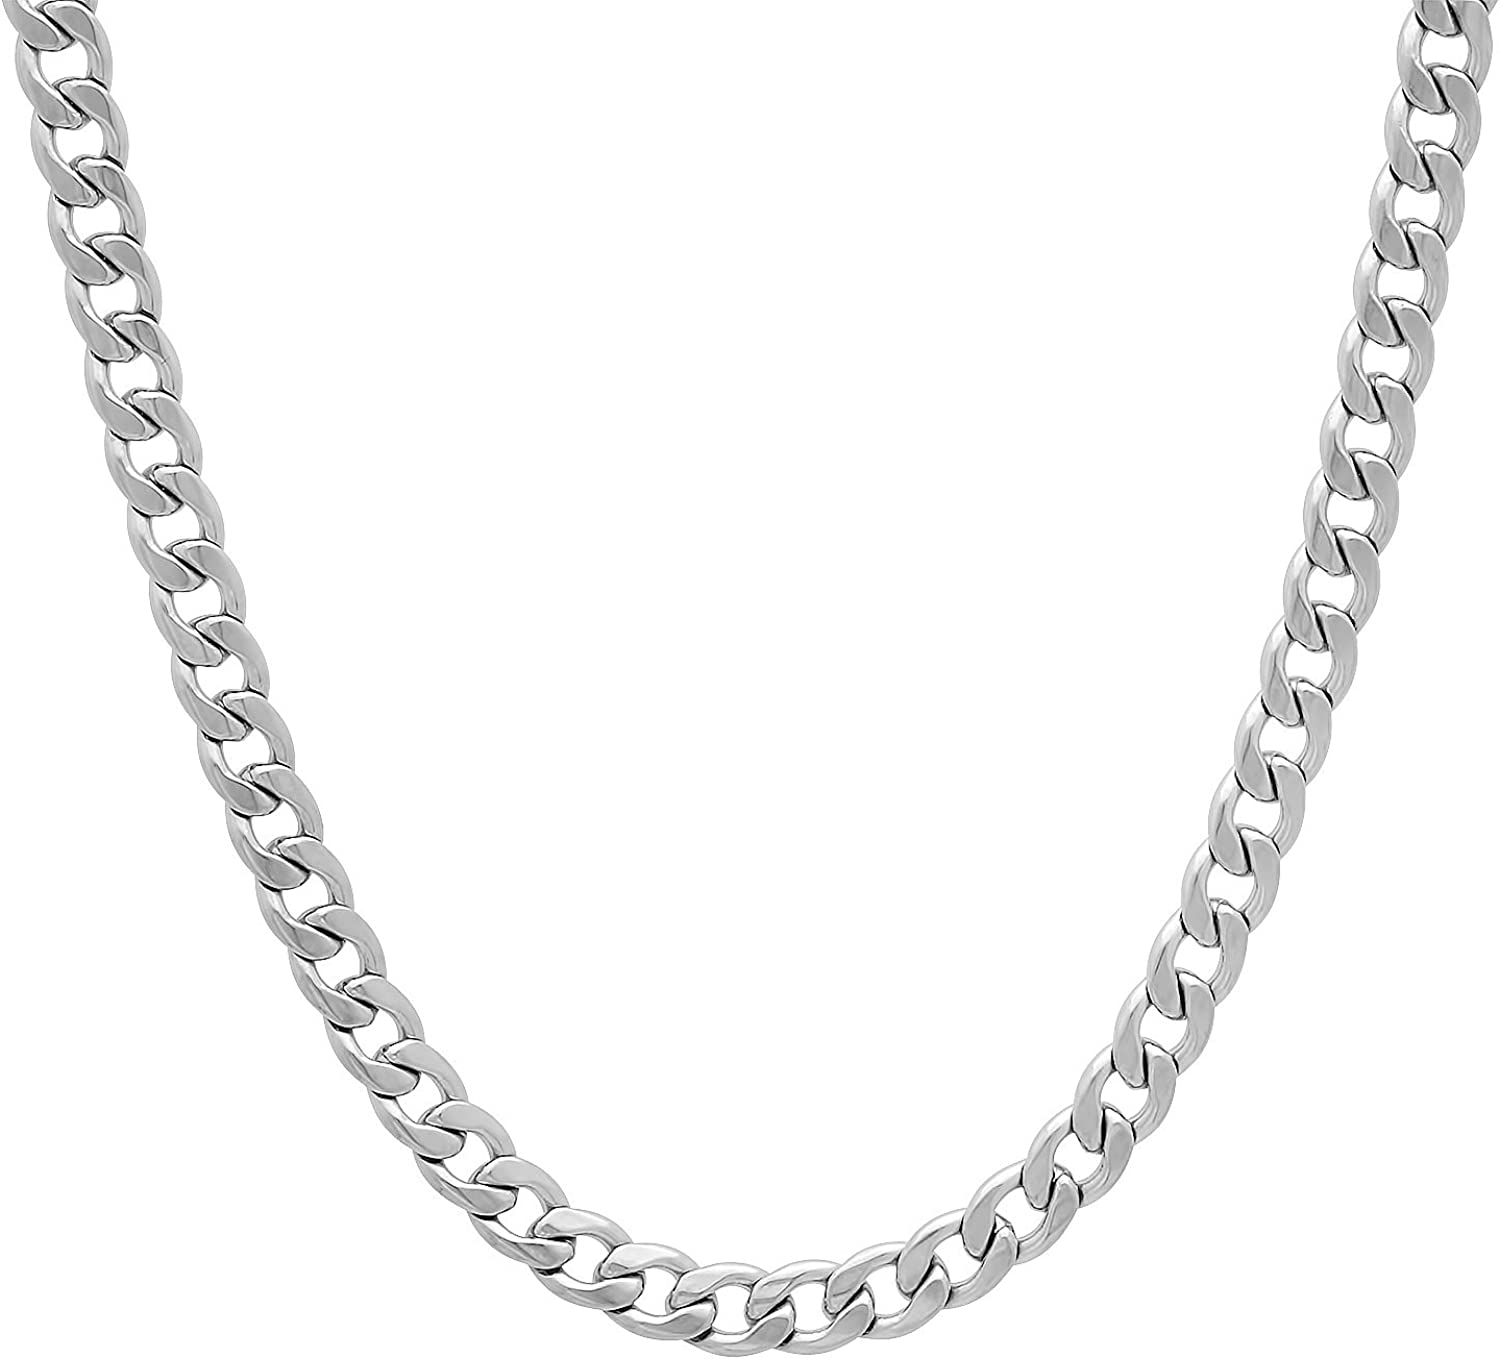 The Bling Factory 5.3mm High-Polished Stainless Steel Flat Cuban Link Curb Chain Necklace, 18'-30 + Jewelry Cloth & Pouch